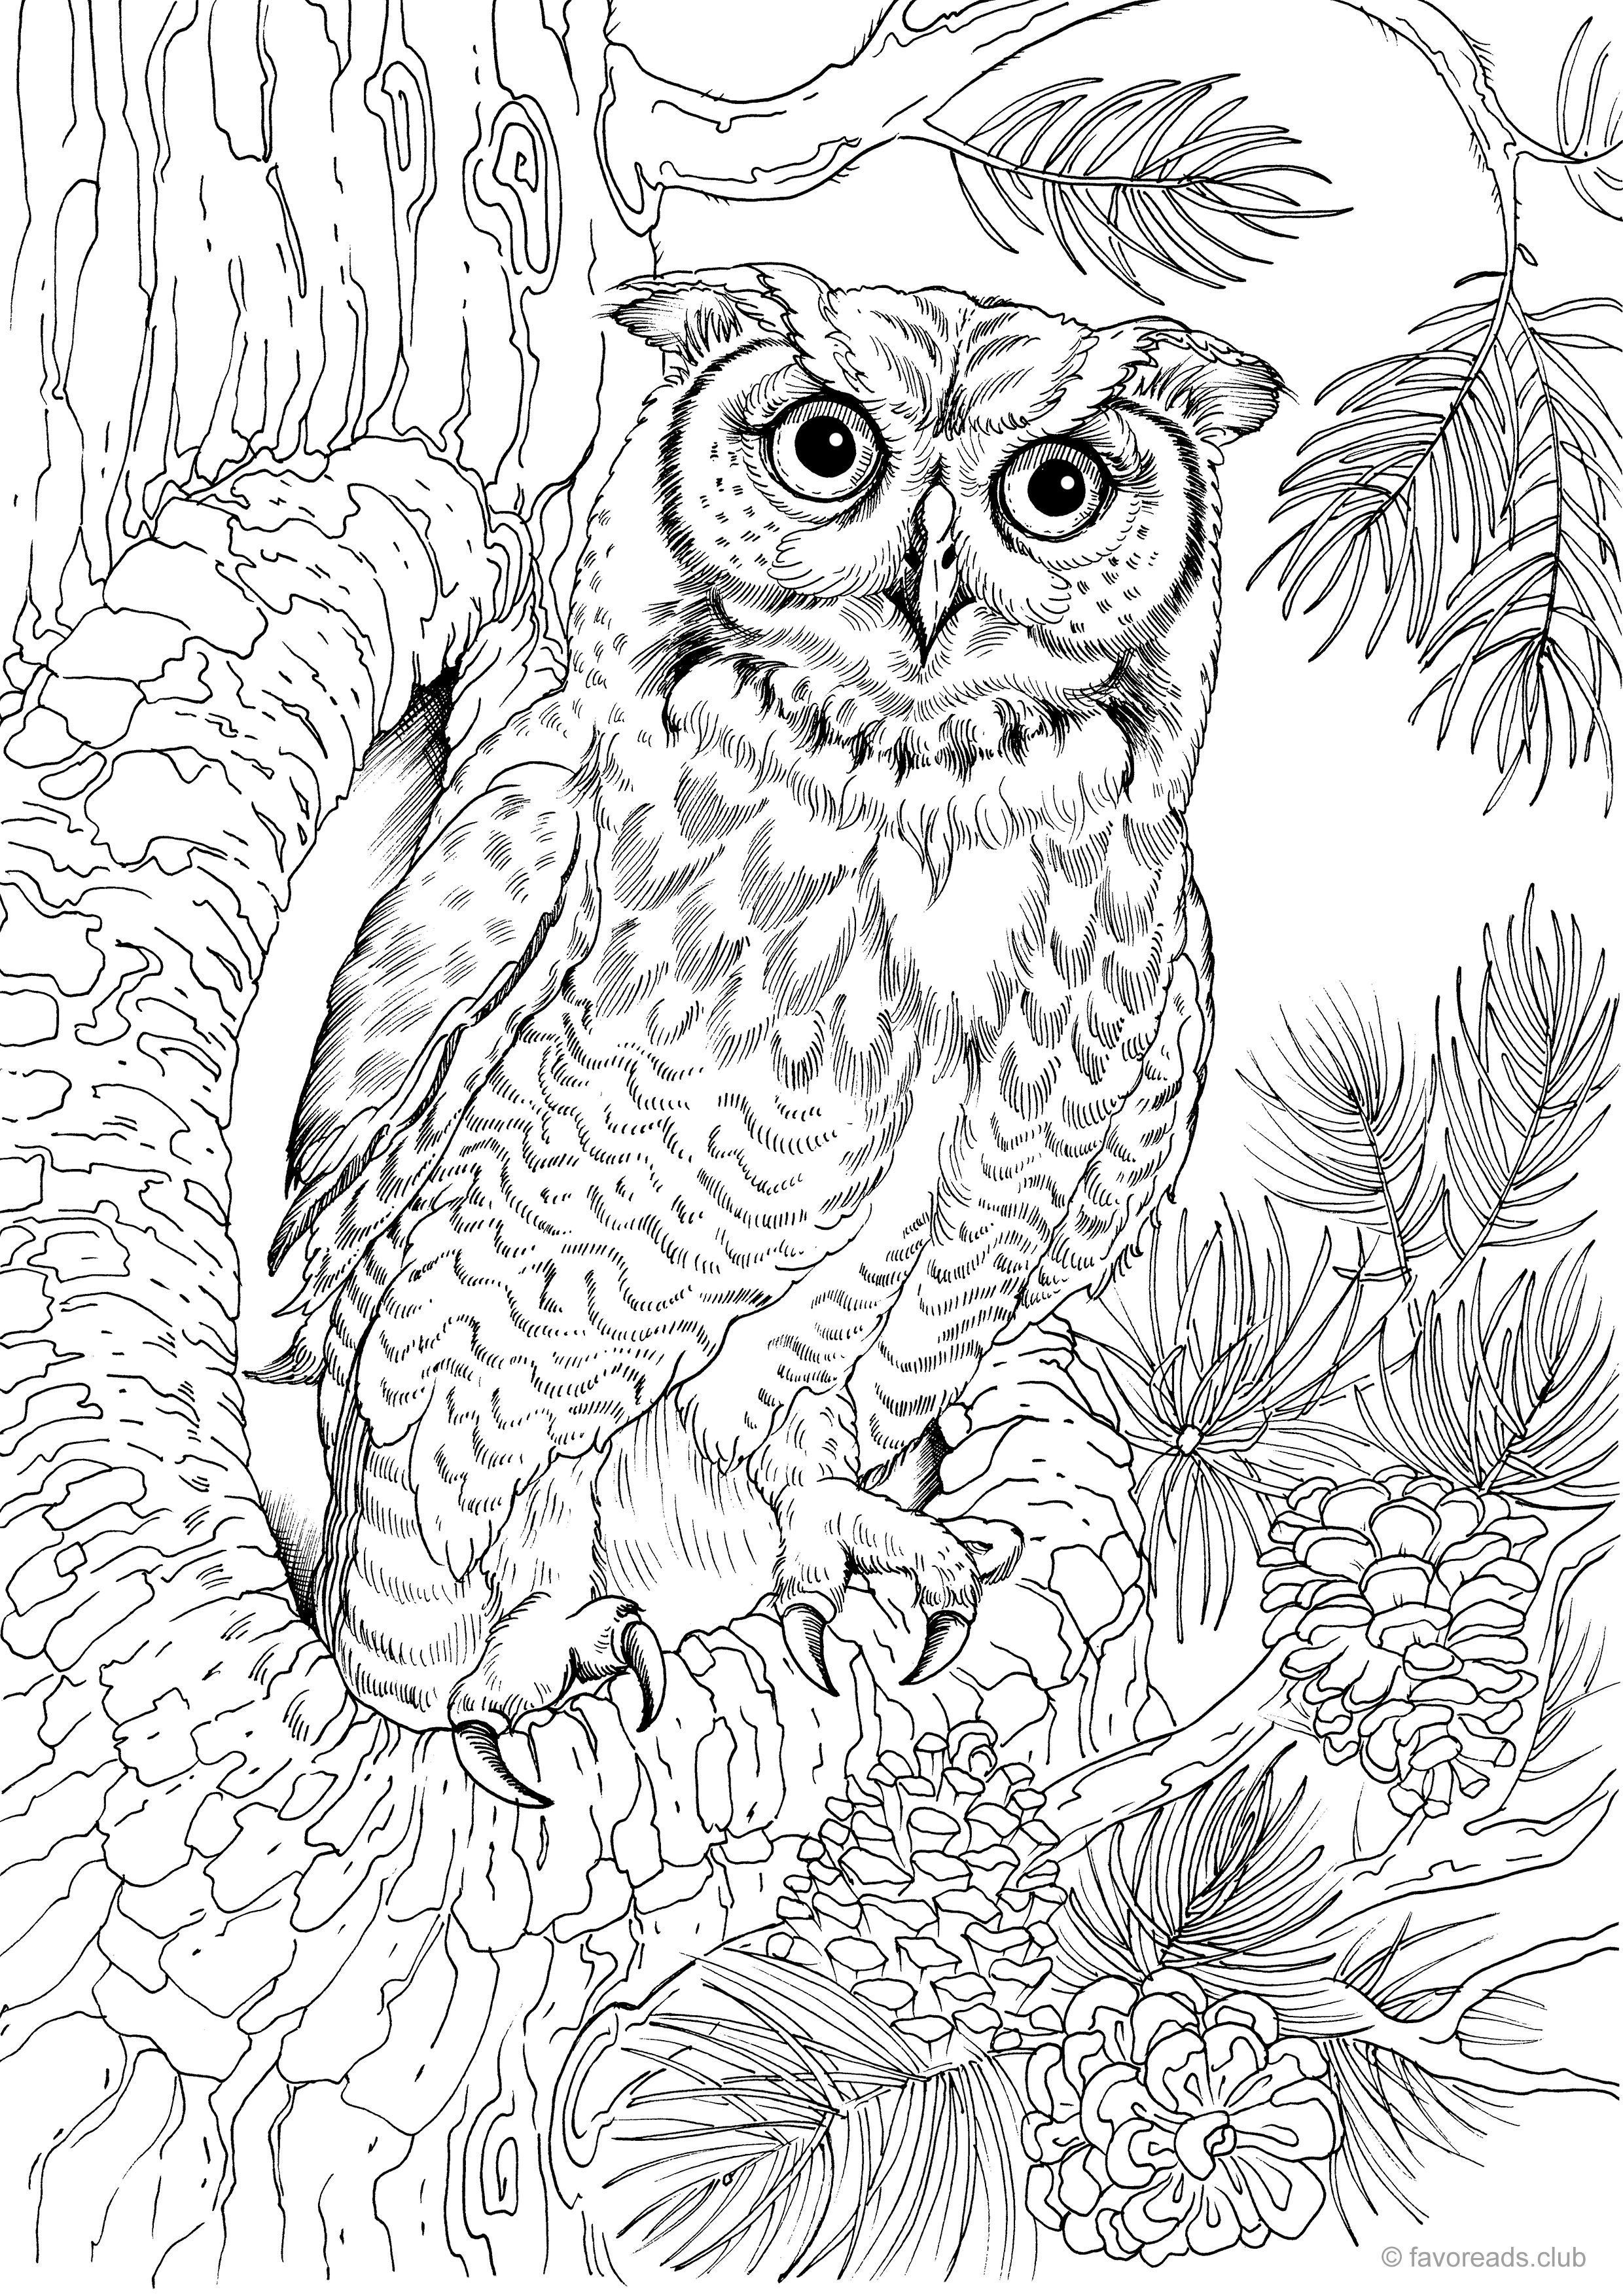 Pin By Amanda Kay On Coloring Pages Owl Coloring Pages Bird Coloring Pages Animal Coloring Pages